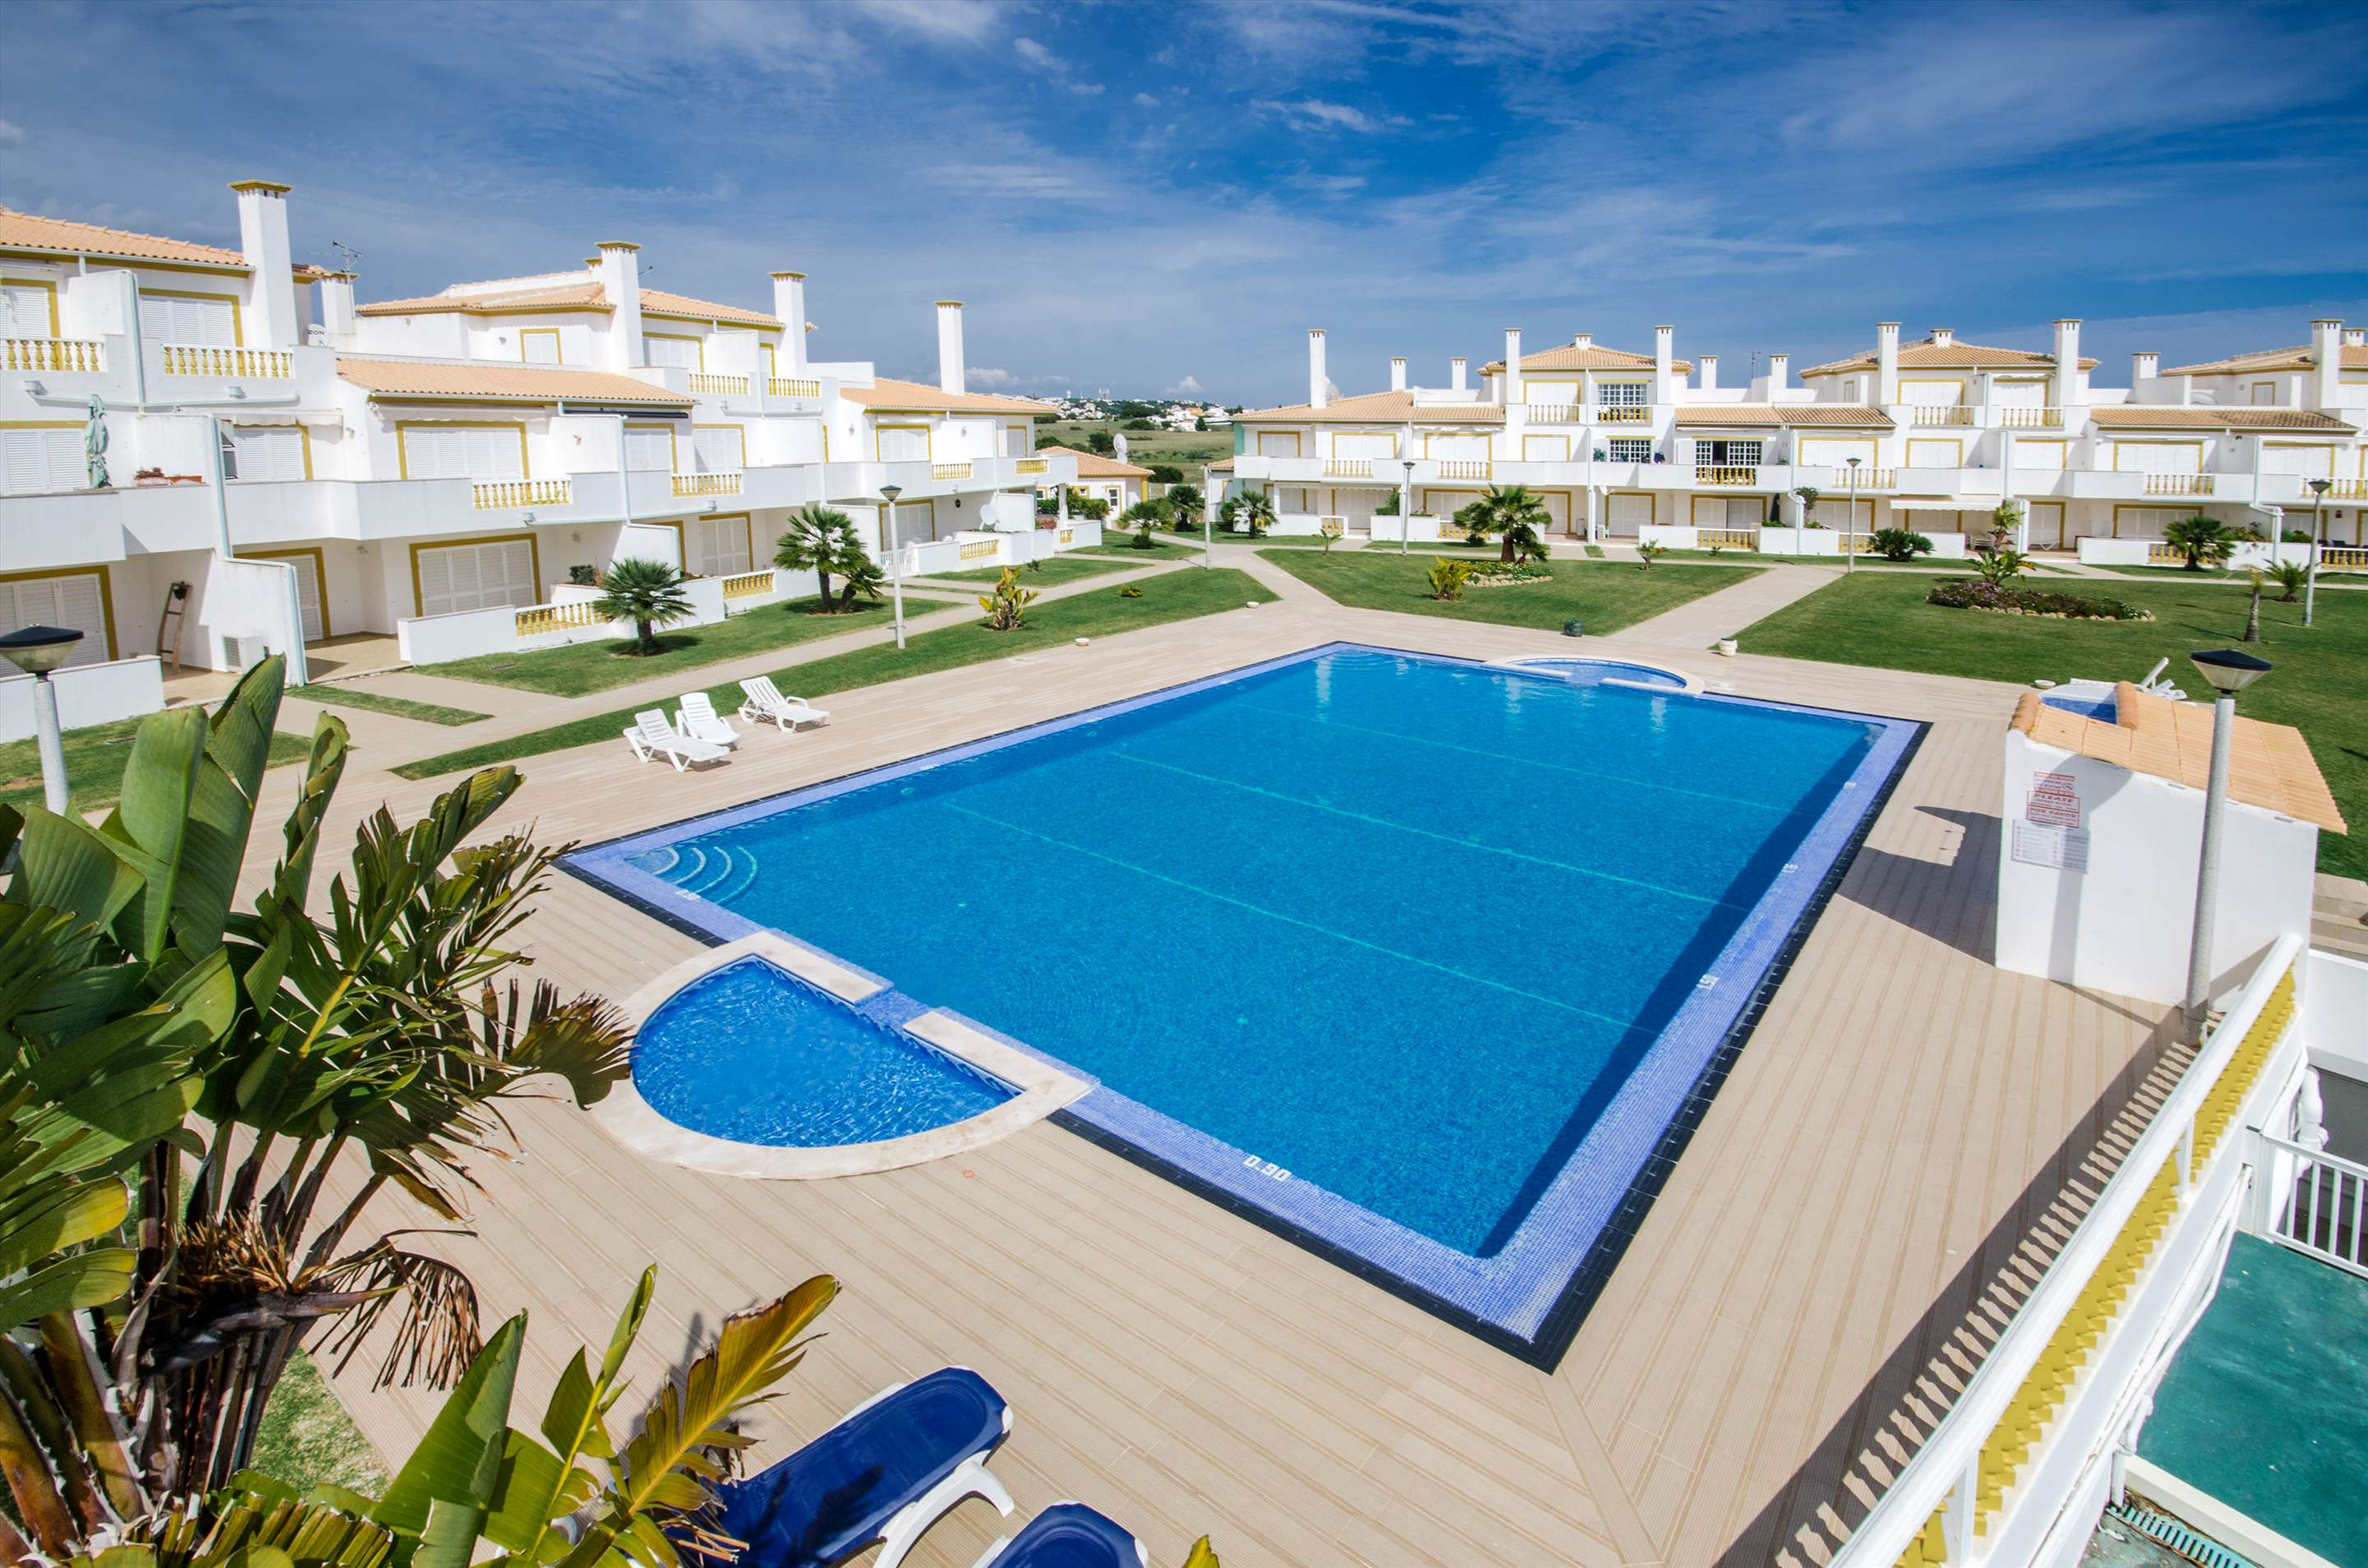 Apt O Monte, Up to 6 Persons, 3 bedroom apartment in Gale, Vale da Parra and Guia, Algarve Photo #2